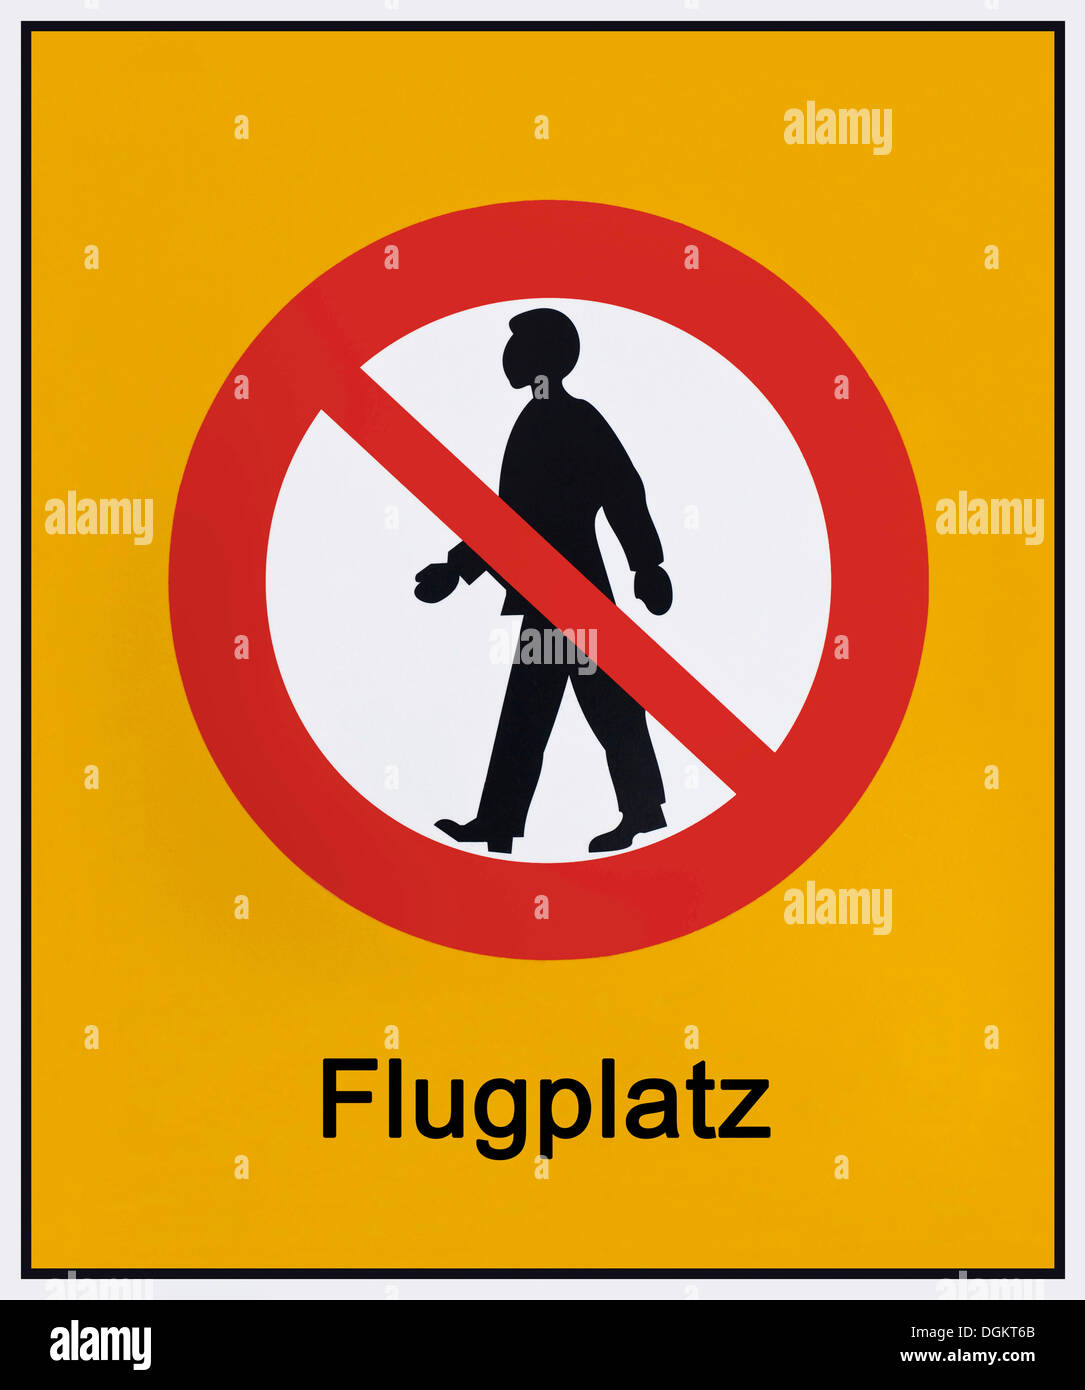 Sign at an airport, pictogram, no pedestrian access - Stock Image